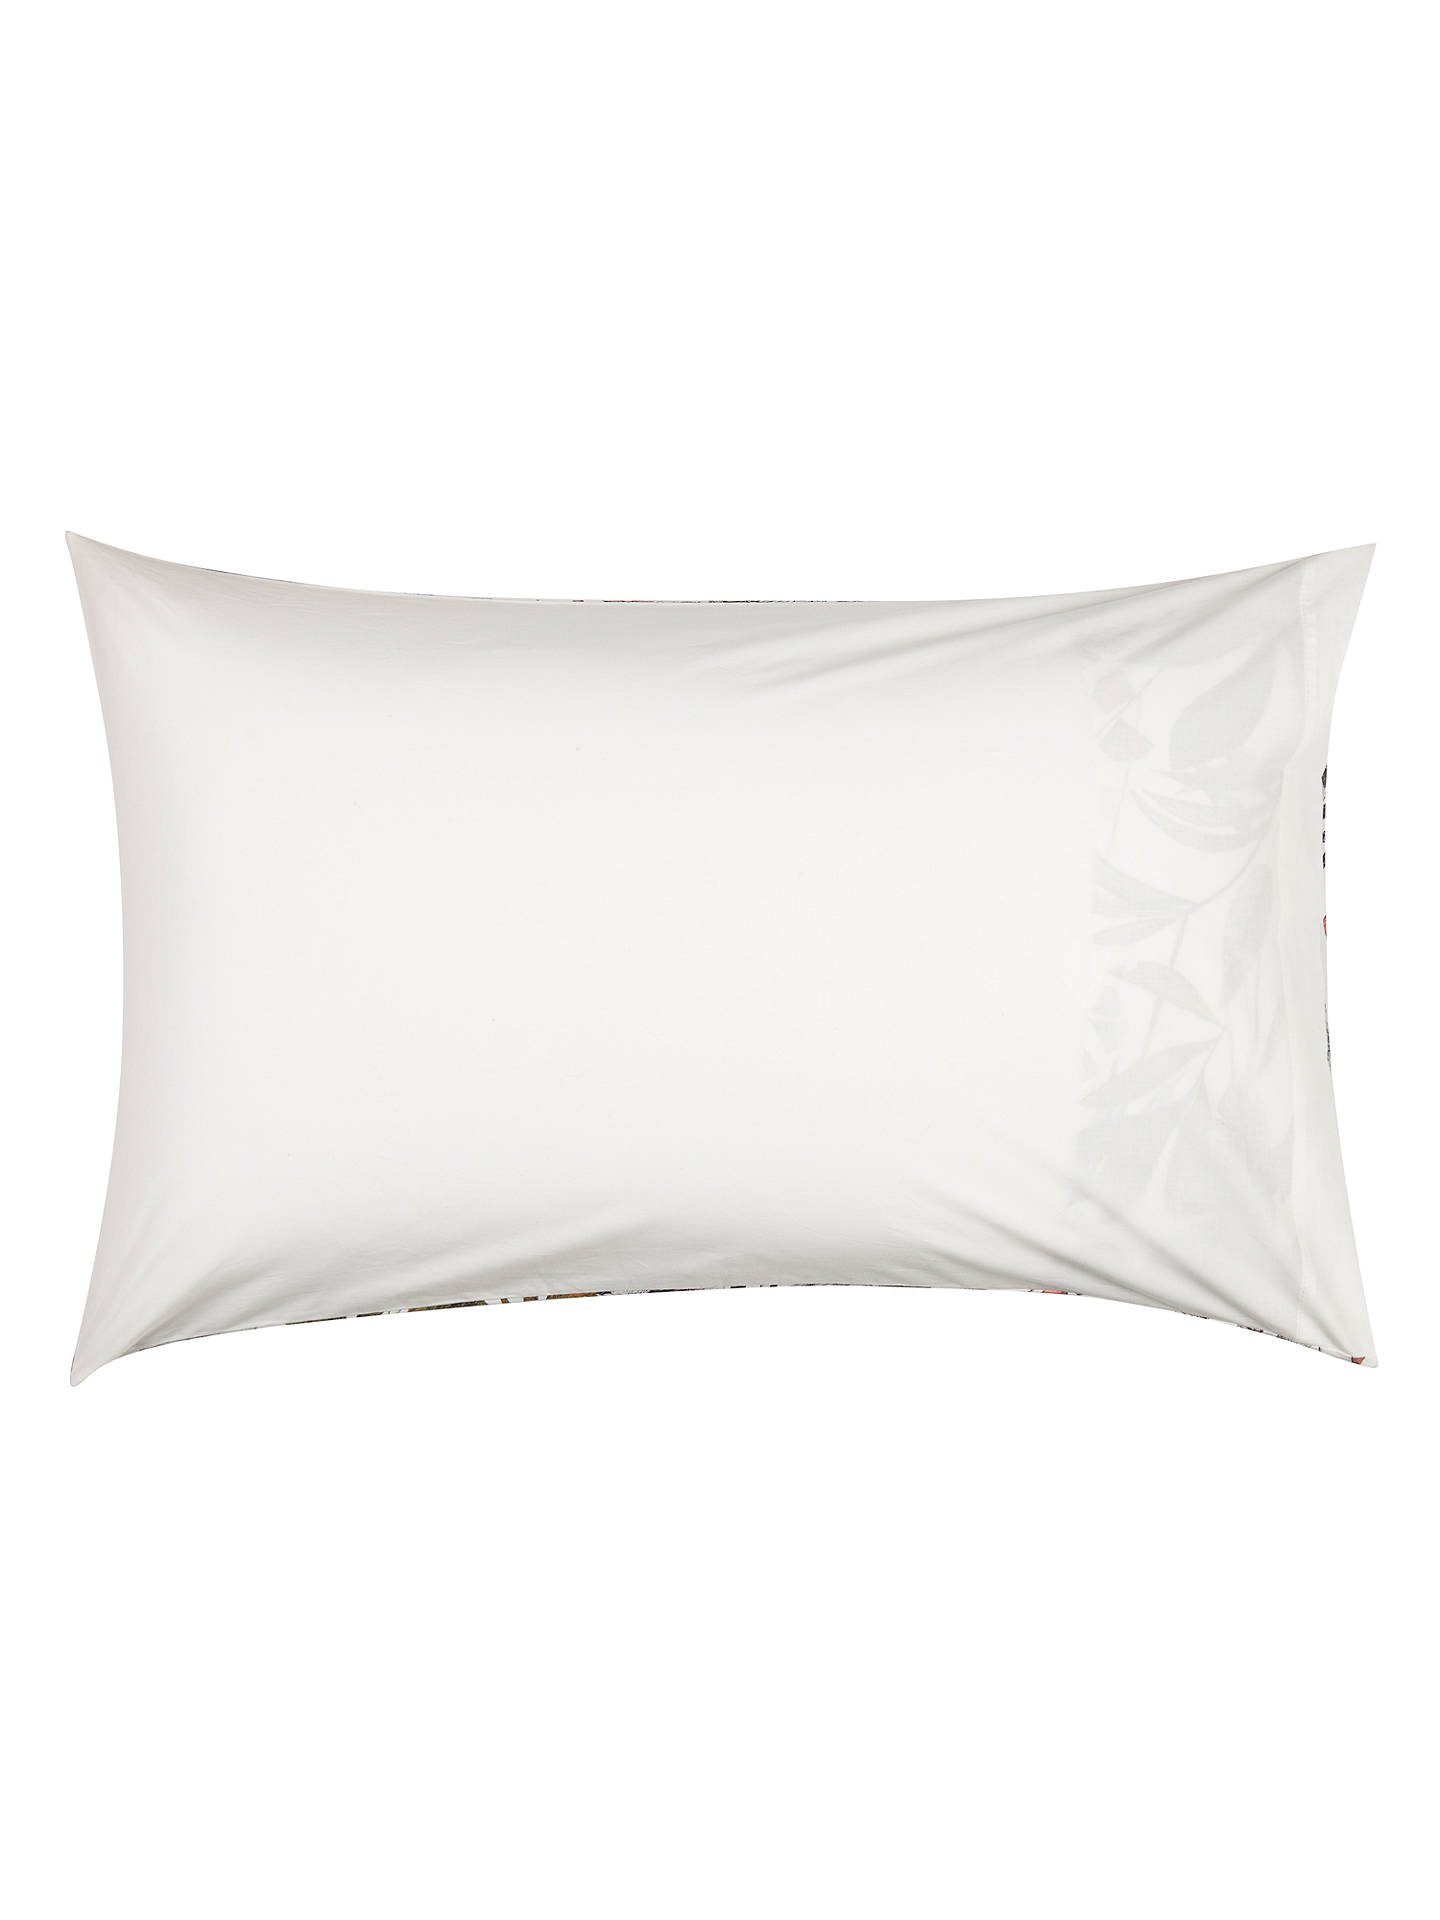 BuyJohn Lewis & Partners Crisp and Fresh Ipanema Double Duvet Cover Set, Multi Online at johnlewis.com